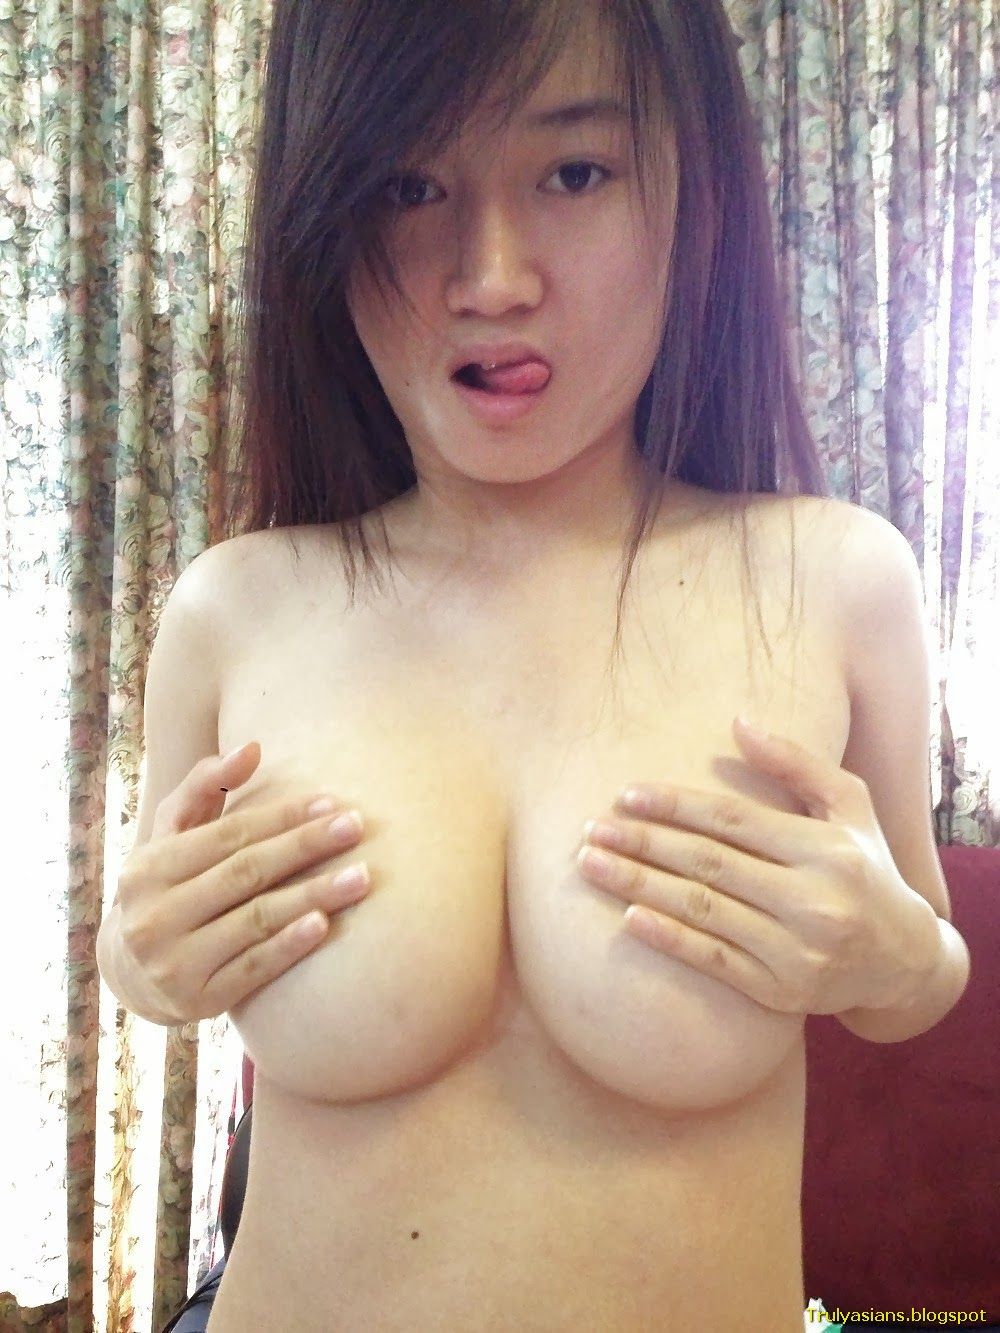 Naked Singapore Teen Hot - Ass And Pussy-9592